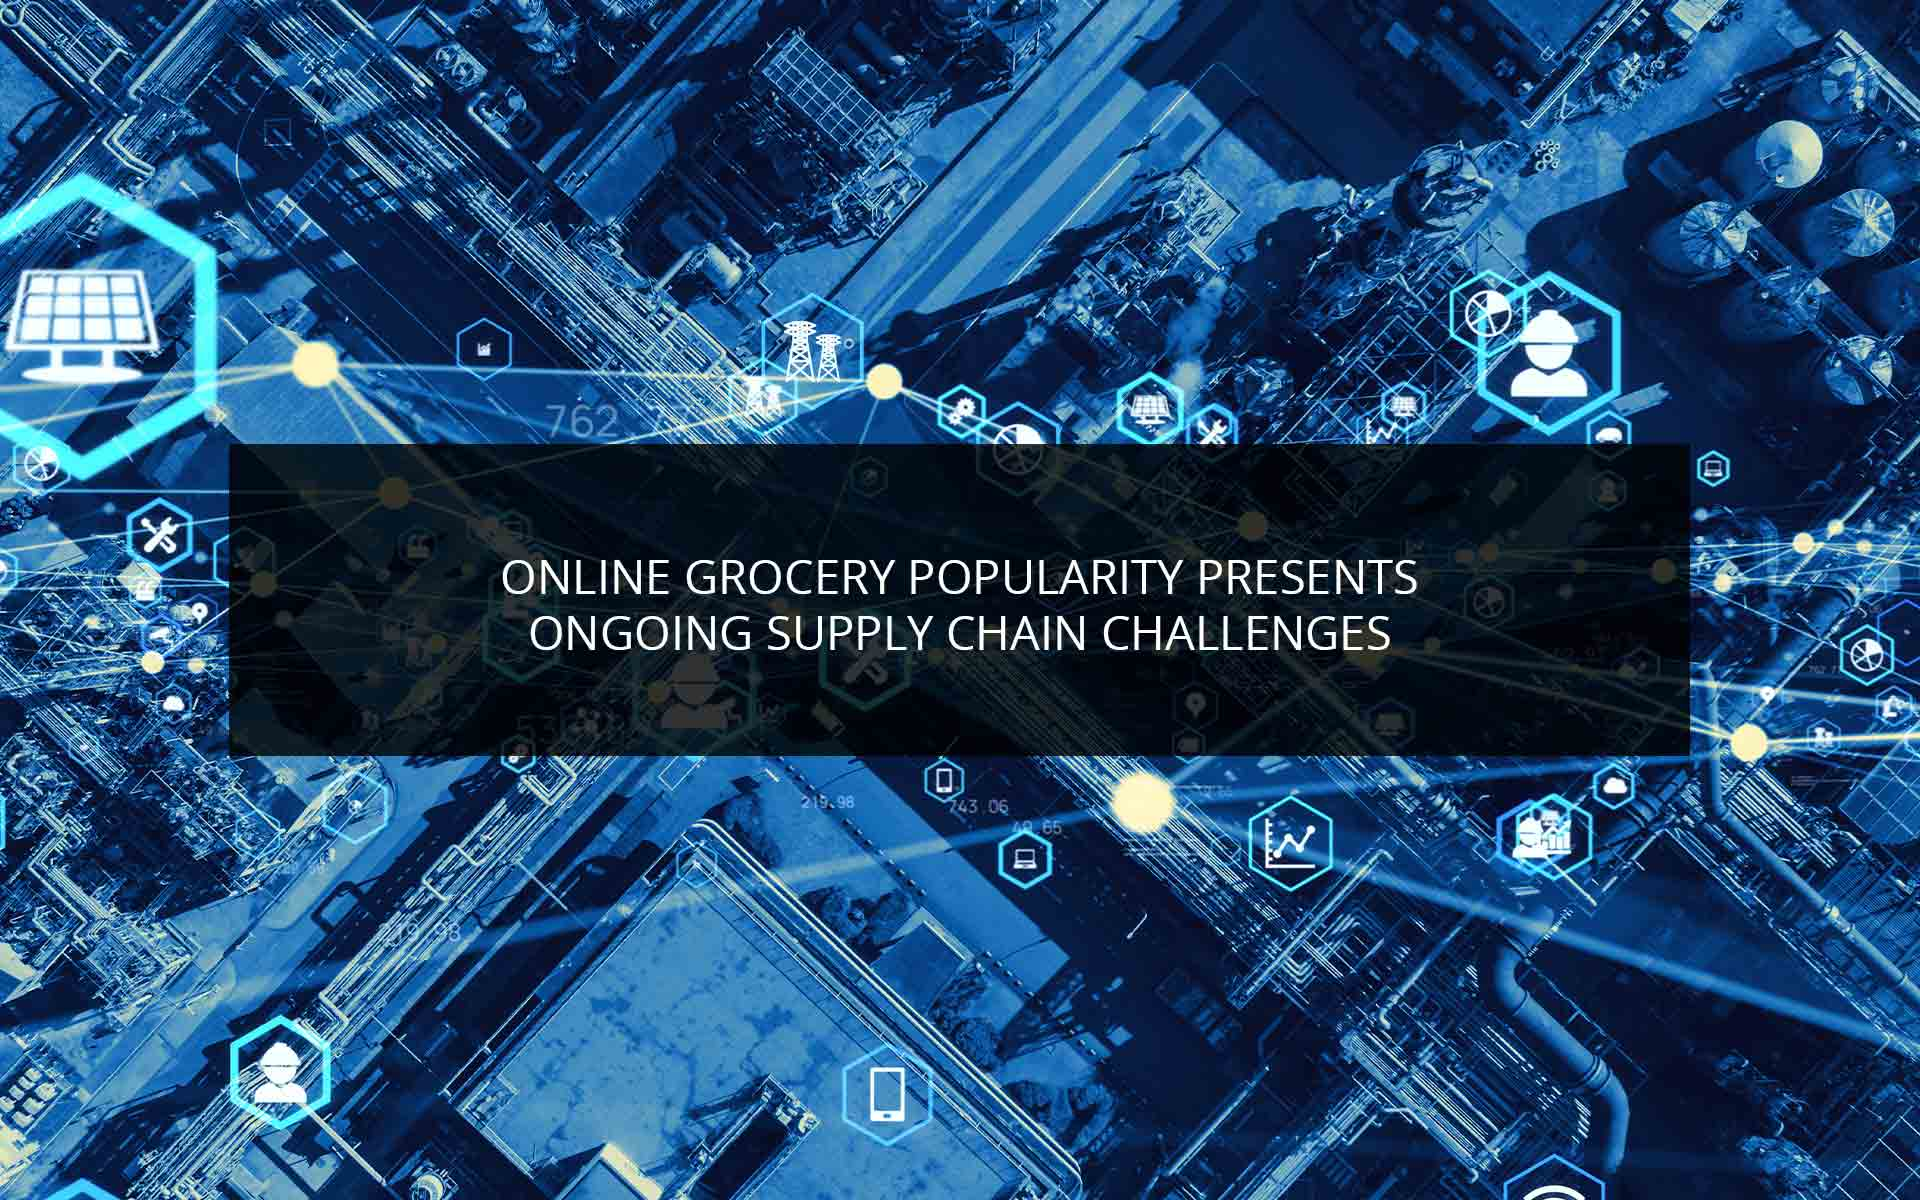 Online Grocery Popularity Presents Ongoing Supply Chain Challenges